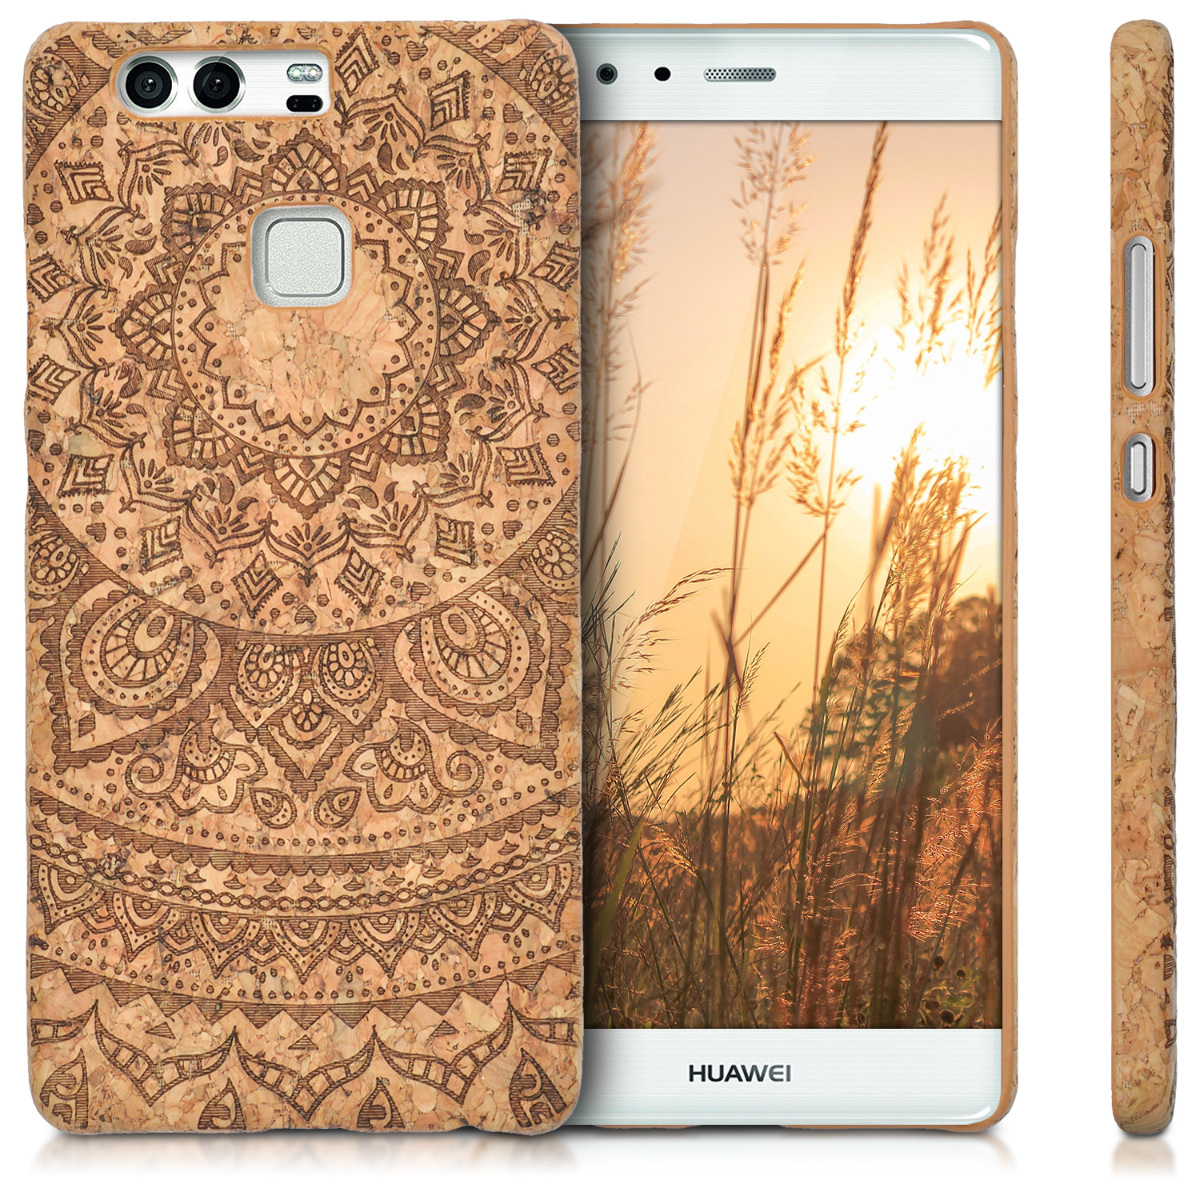 kwmobile-HARD-CASE-AVEC-LIEGE-POUR-HUAWEI-P9-COVER-HOUSSE-PROTECTION-NATURE